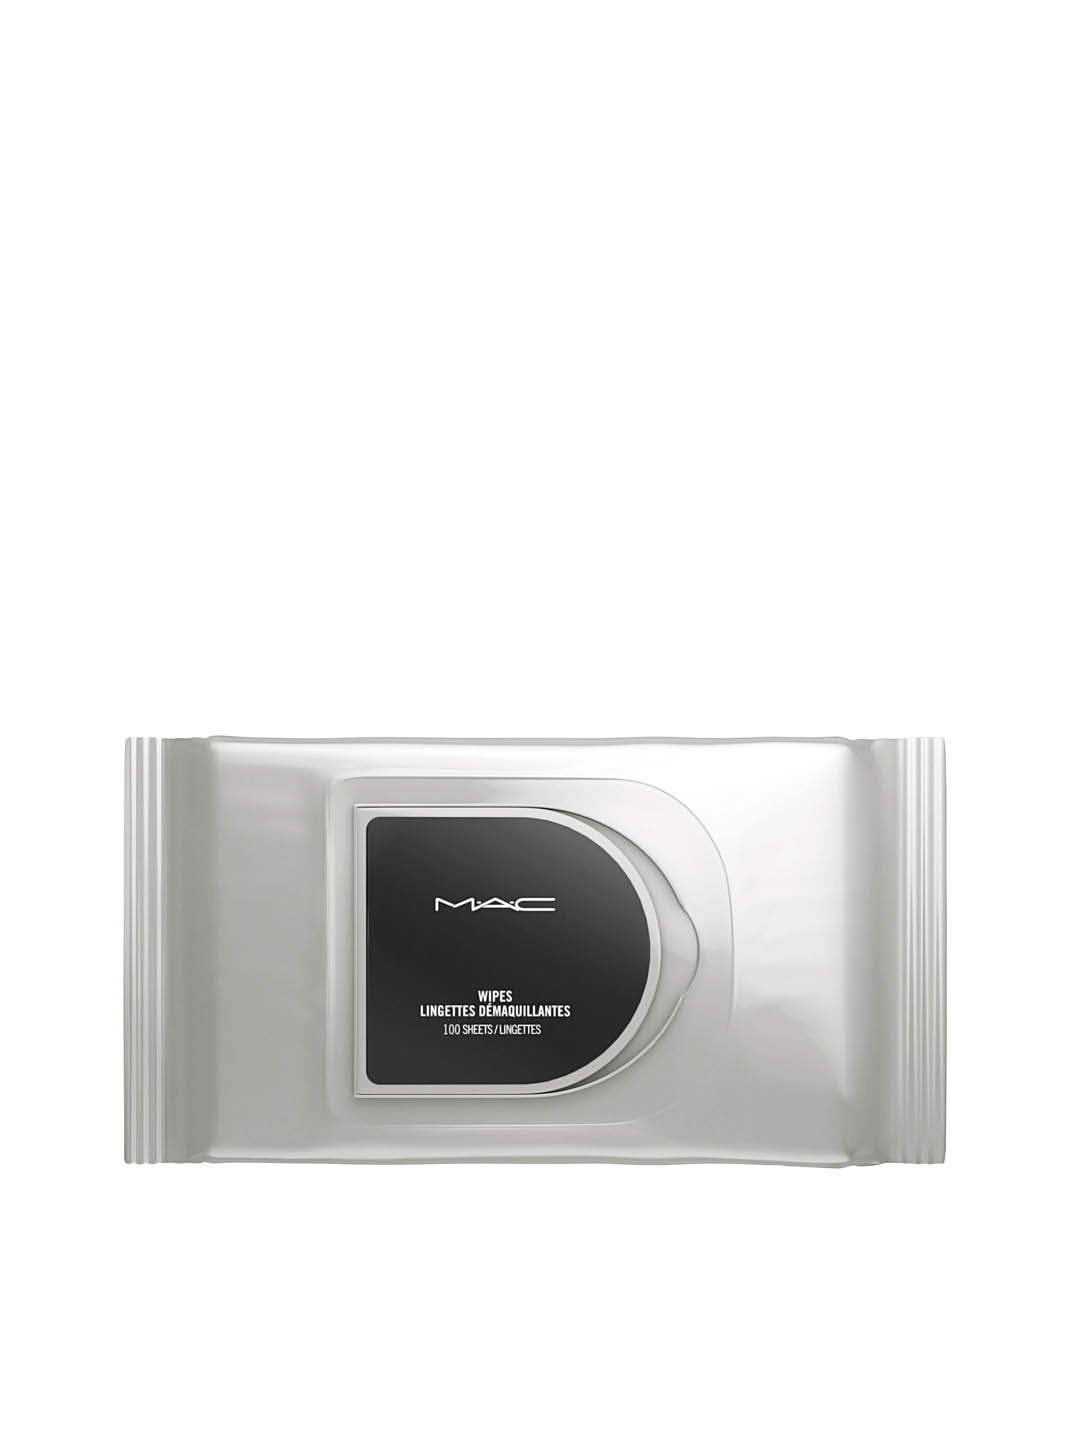 Buy Mac Make Up Remover Wipes Makeup Remover For Women 2065888